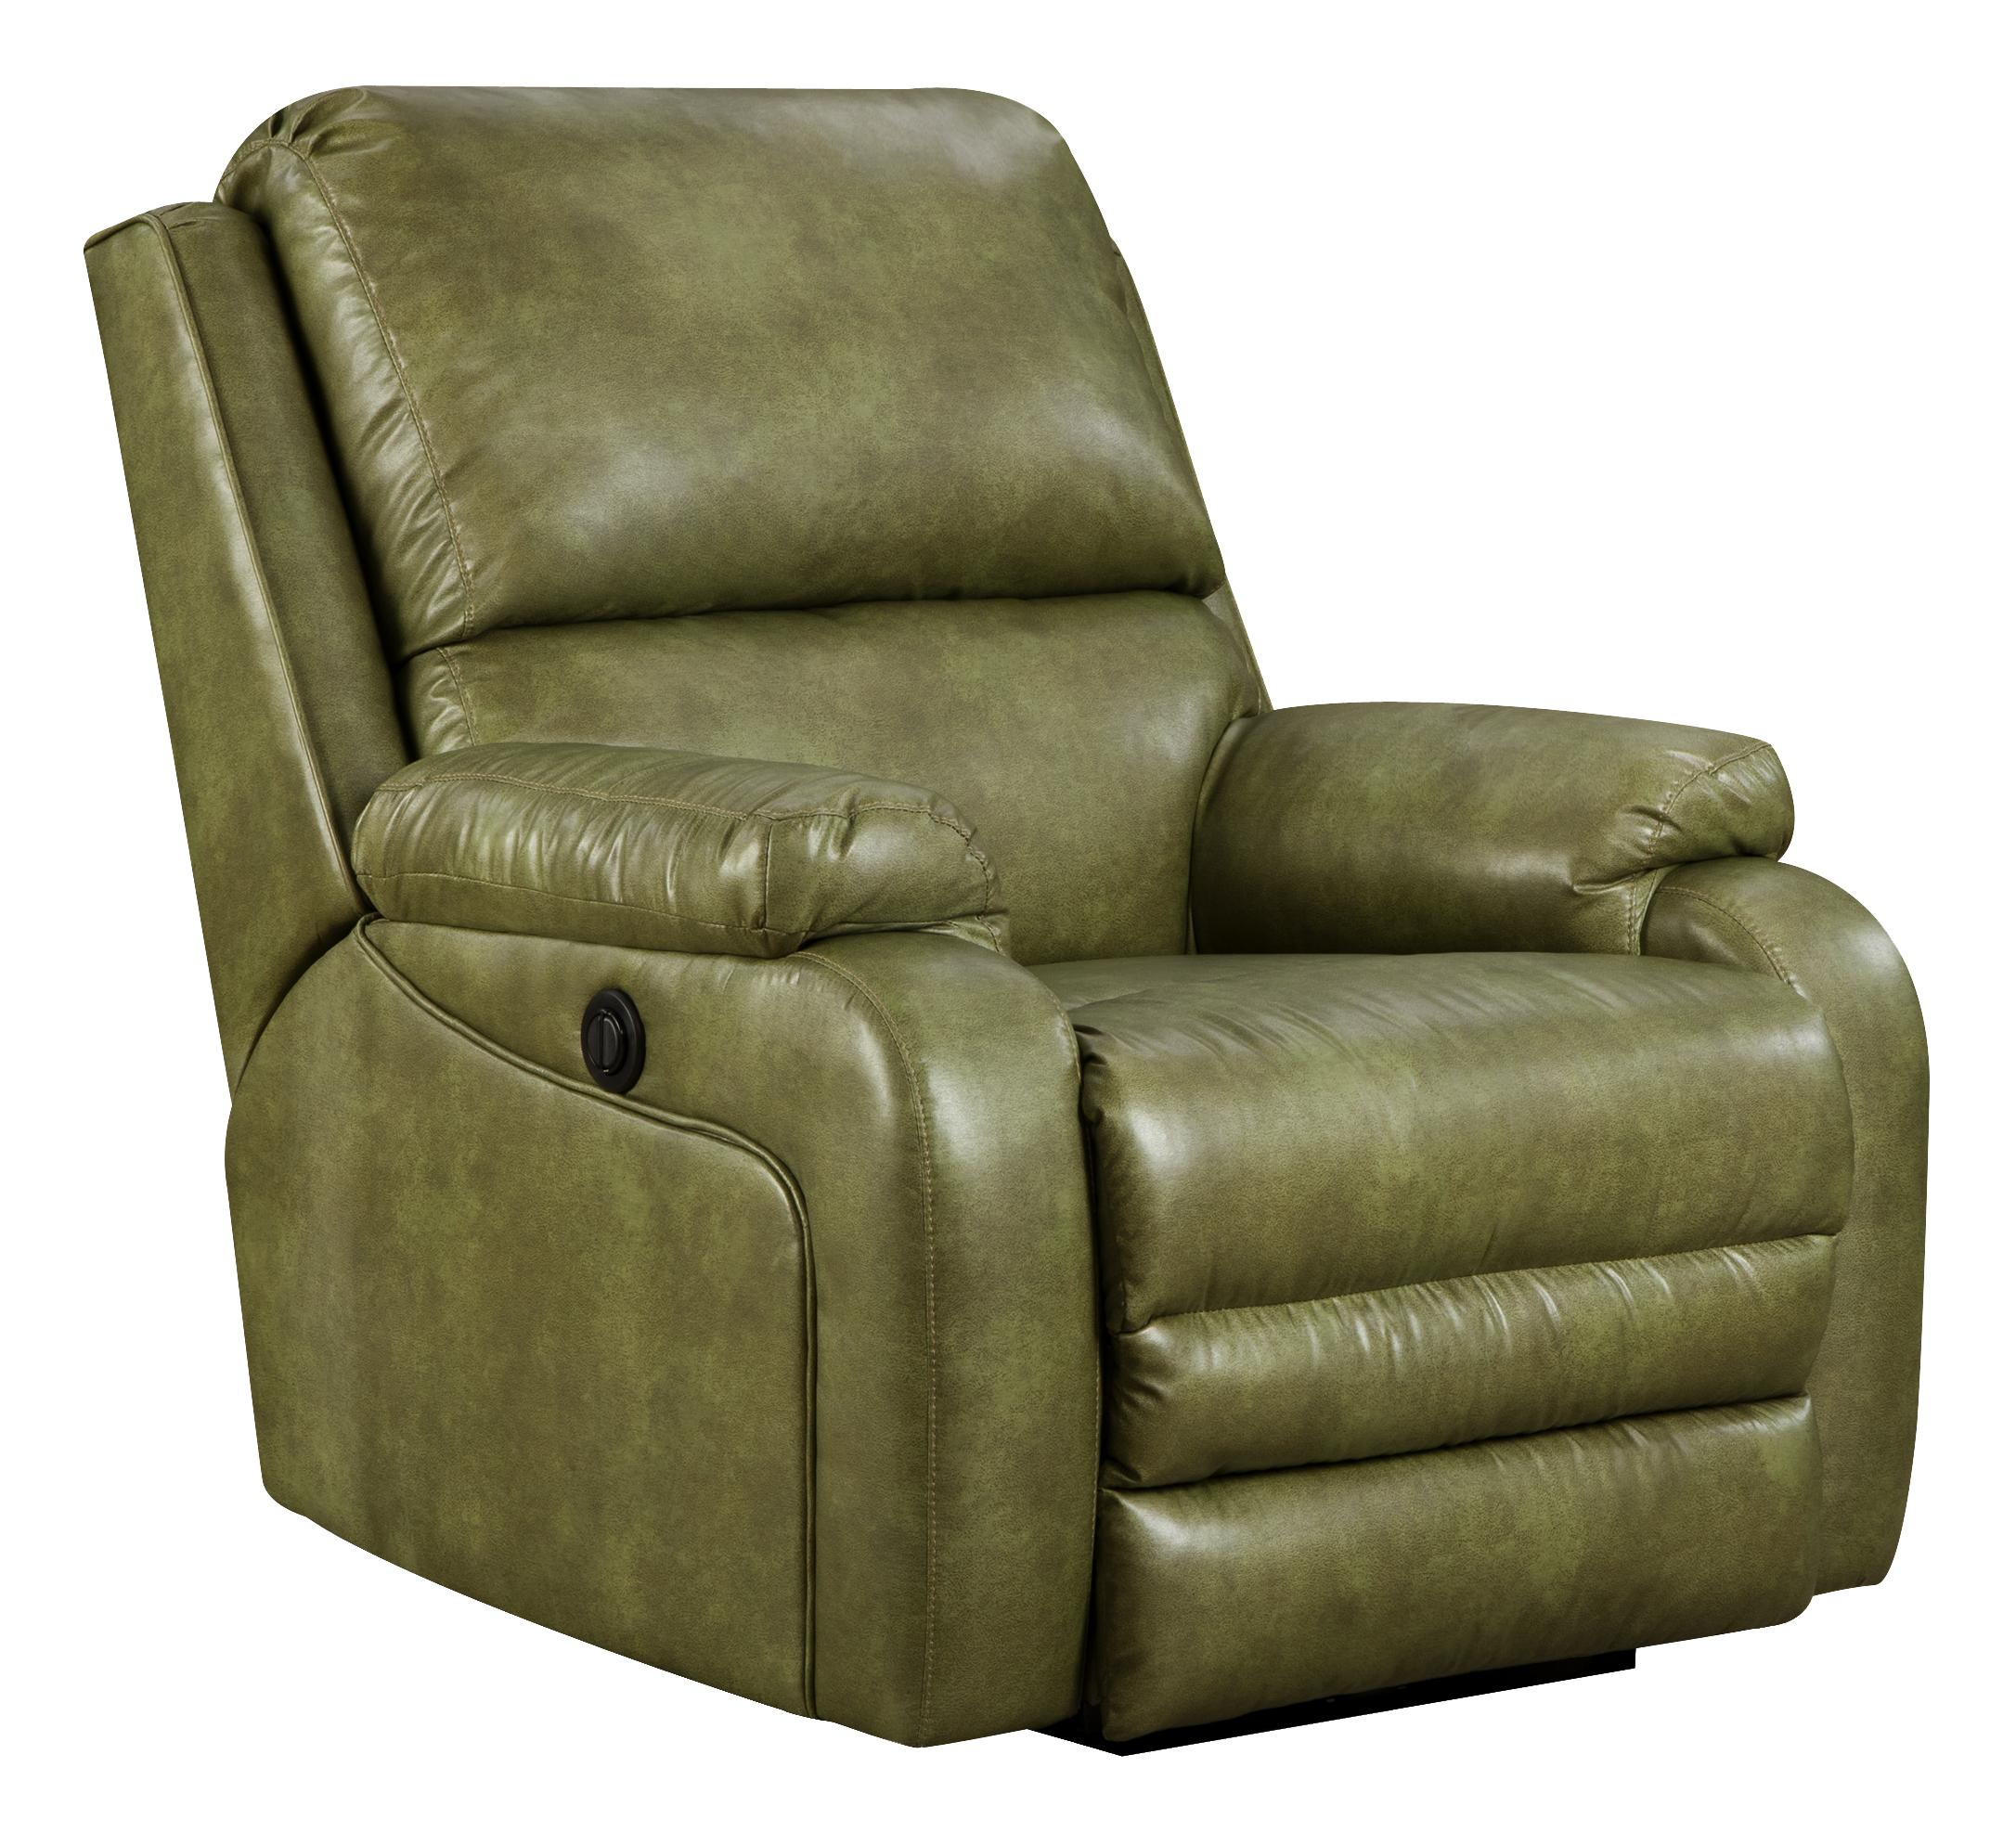 Stylish Recliner Southern Motion Recliners 2174p Ovation Power Wall Hugger